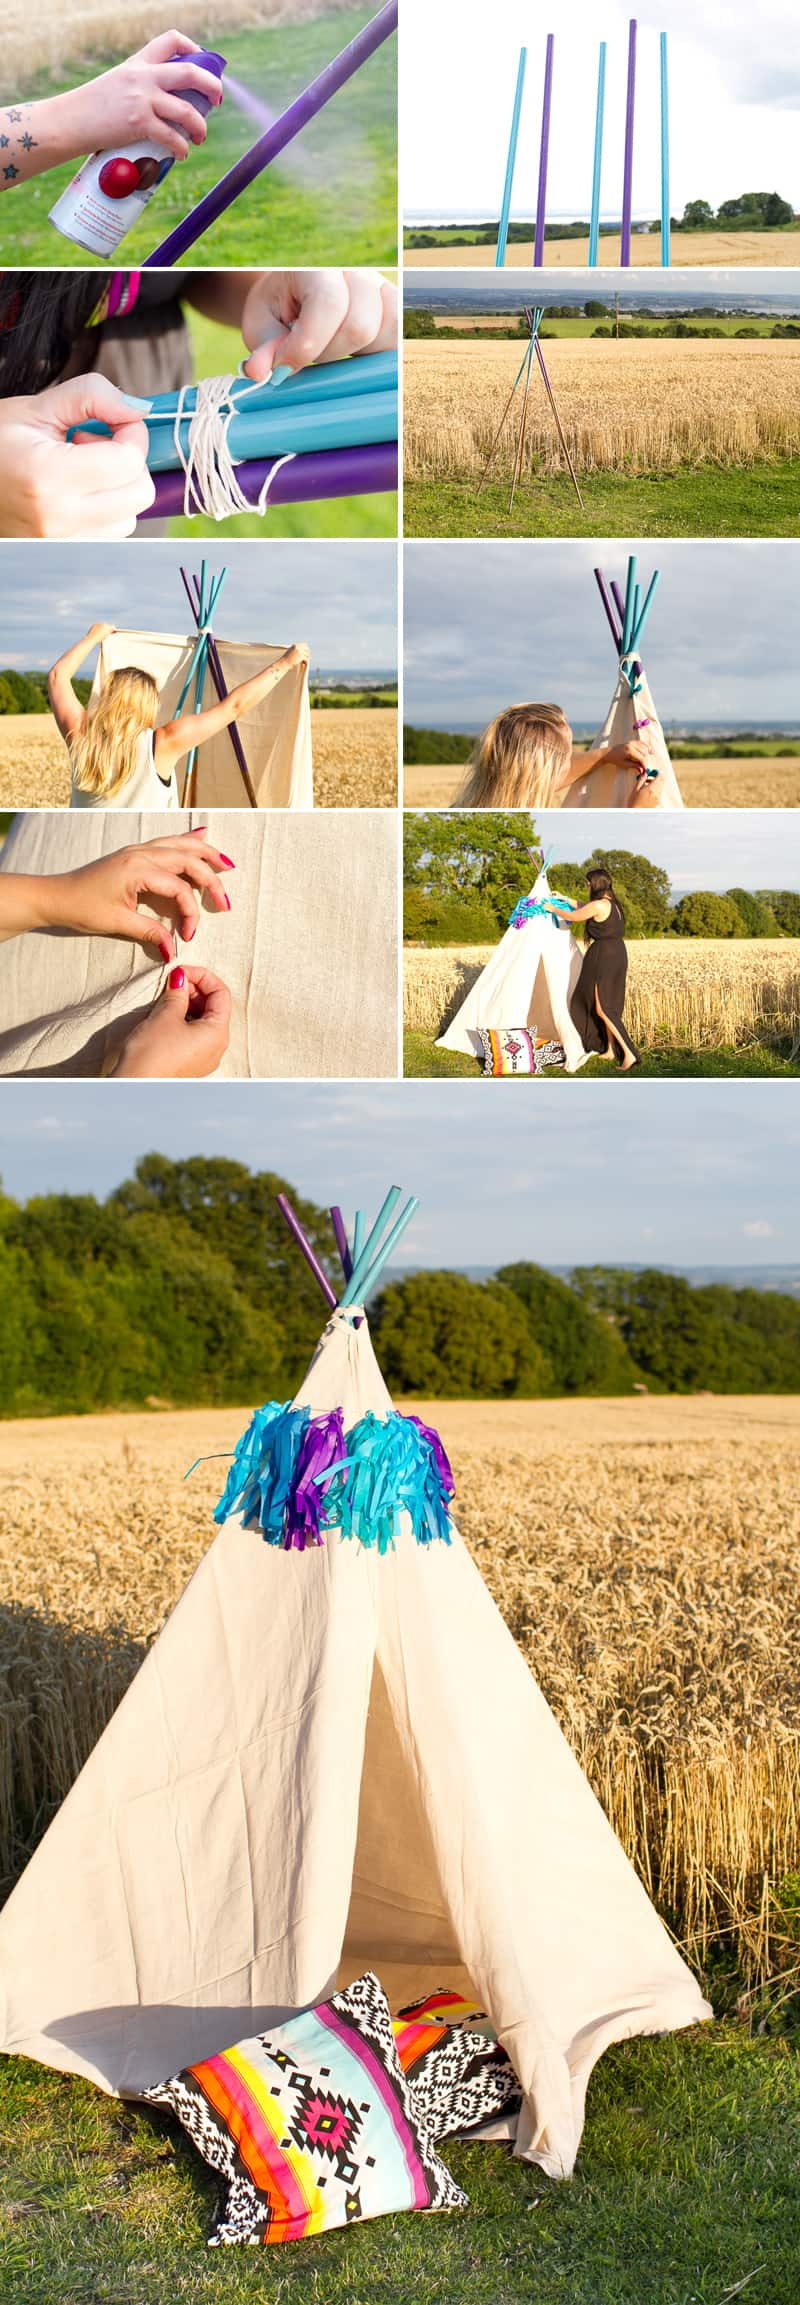 DIY Mini Tipi How to make teepee collage